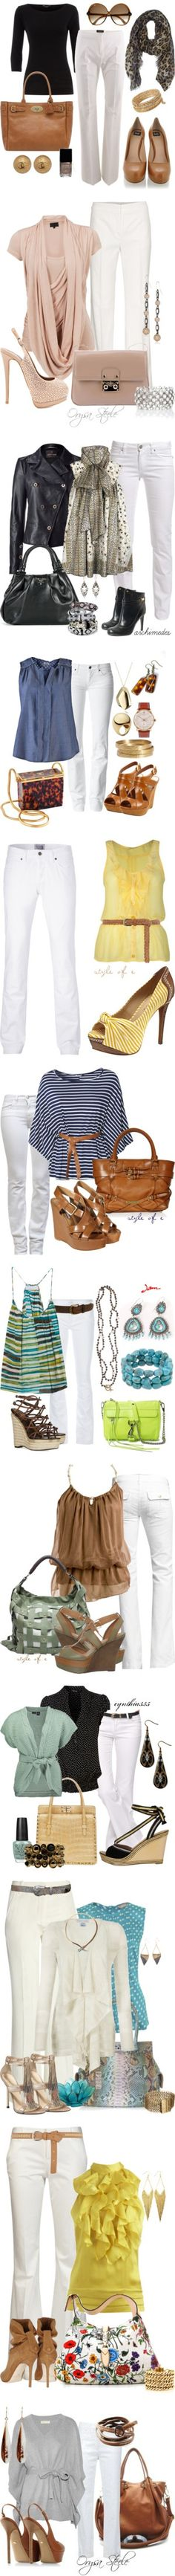 Style for over 35 ~ white jeans are so incredibly versatile.  If you don't like bootcut, go for a skinny or cropped pair